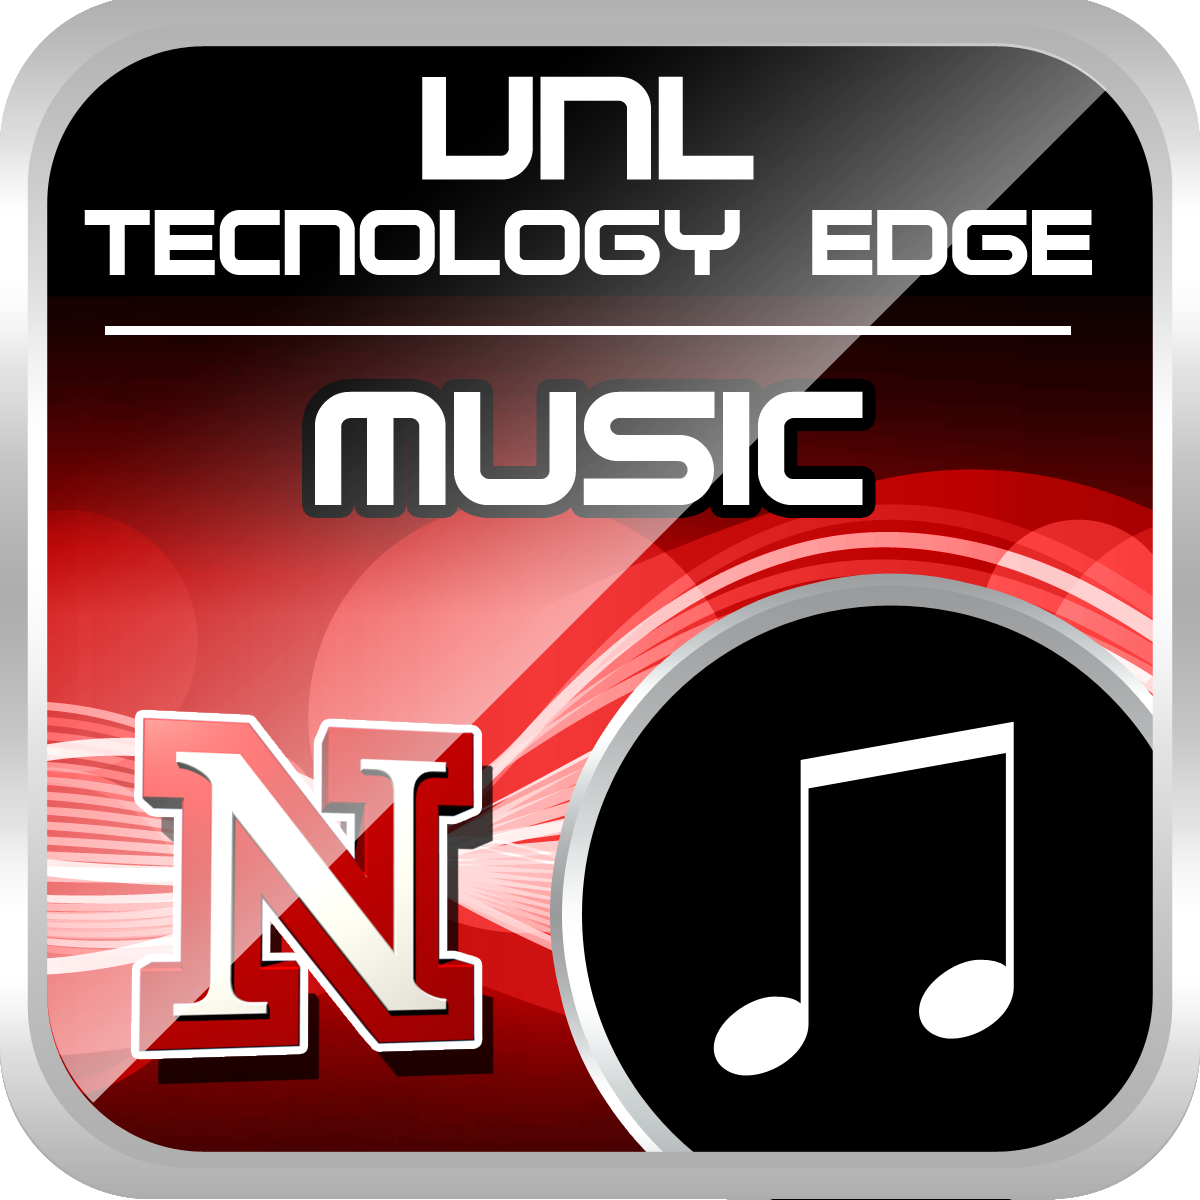 Tech EDGE - Music Image